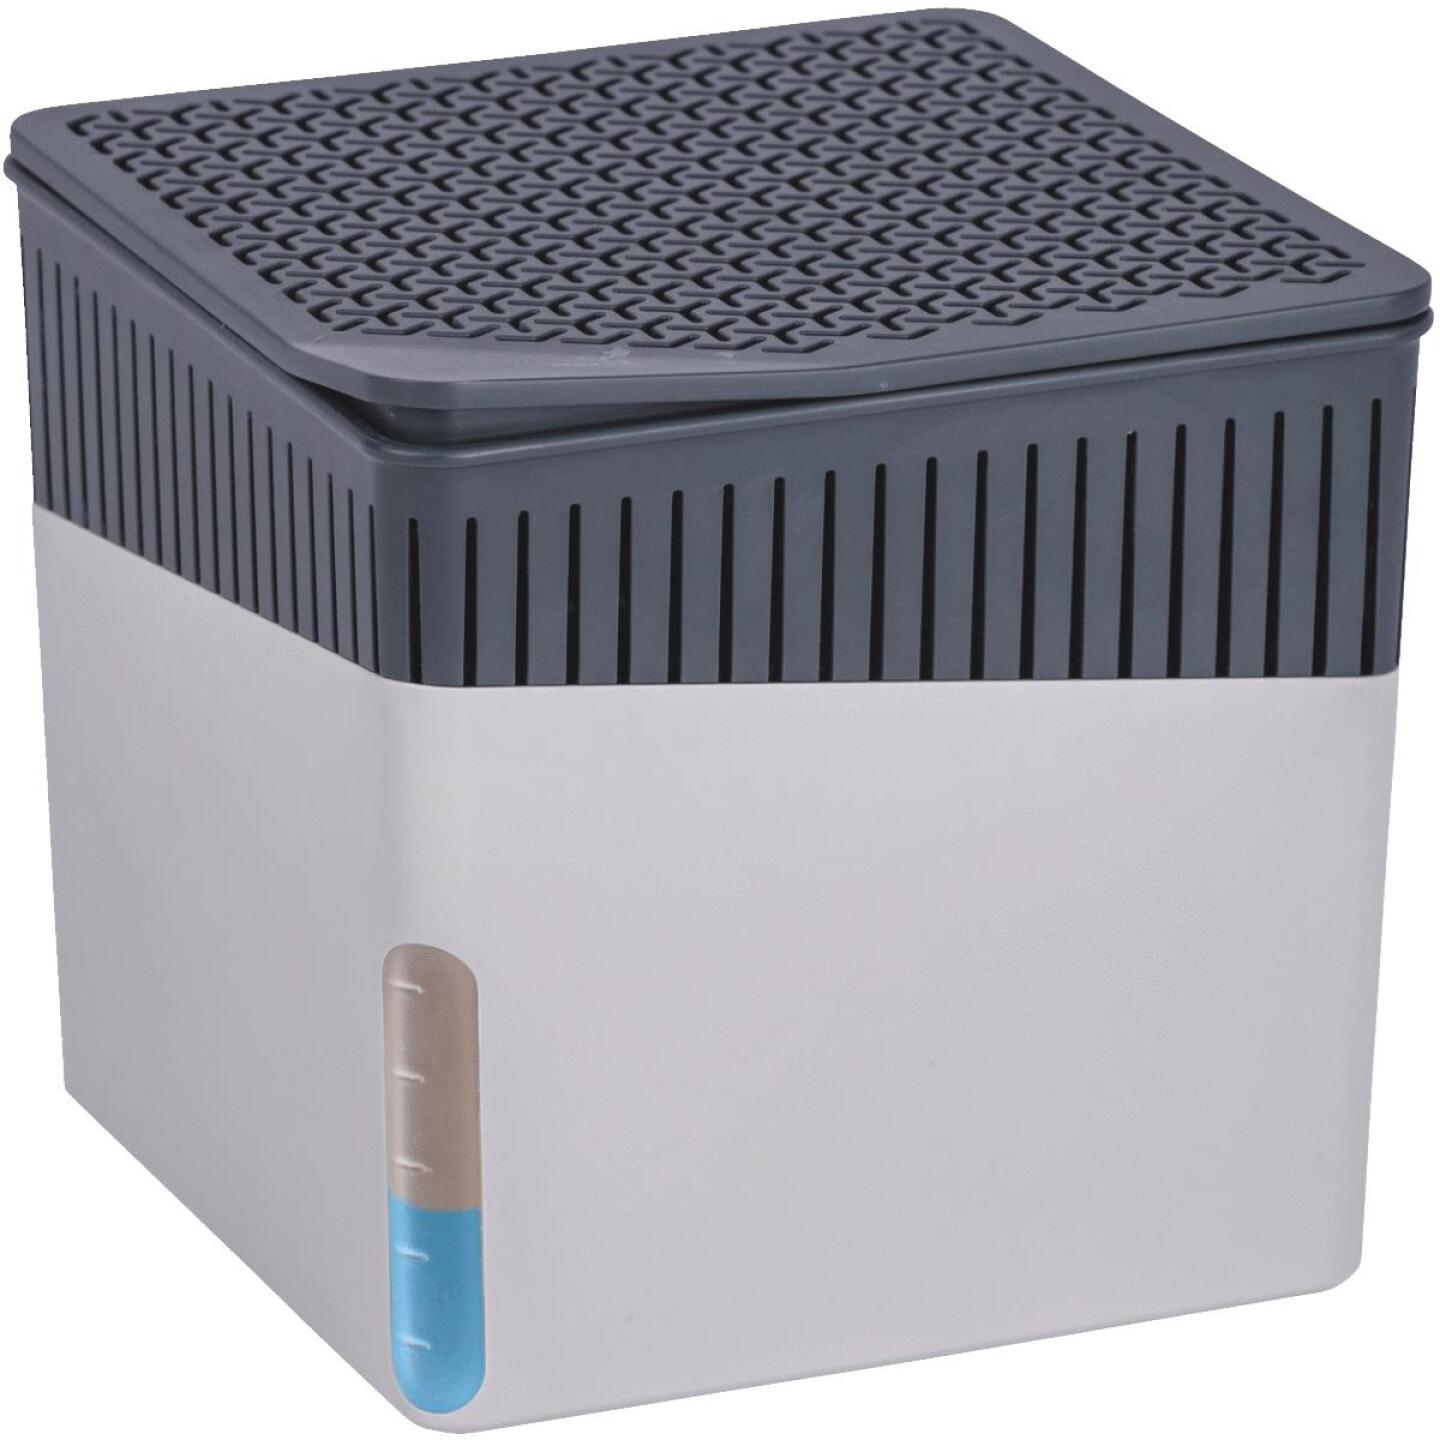 Wenko 262 Sq. Ft. Gray Dehumidifier Image 1